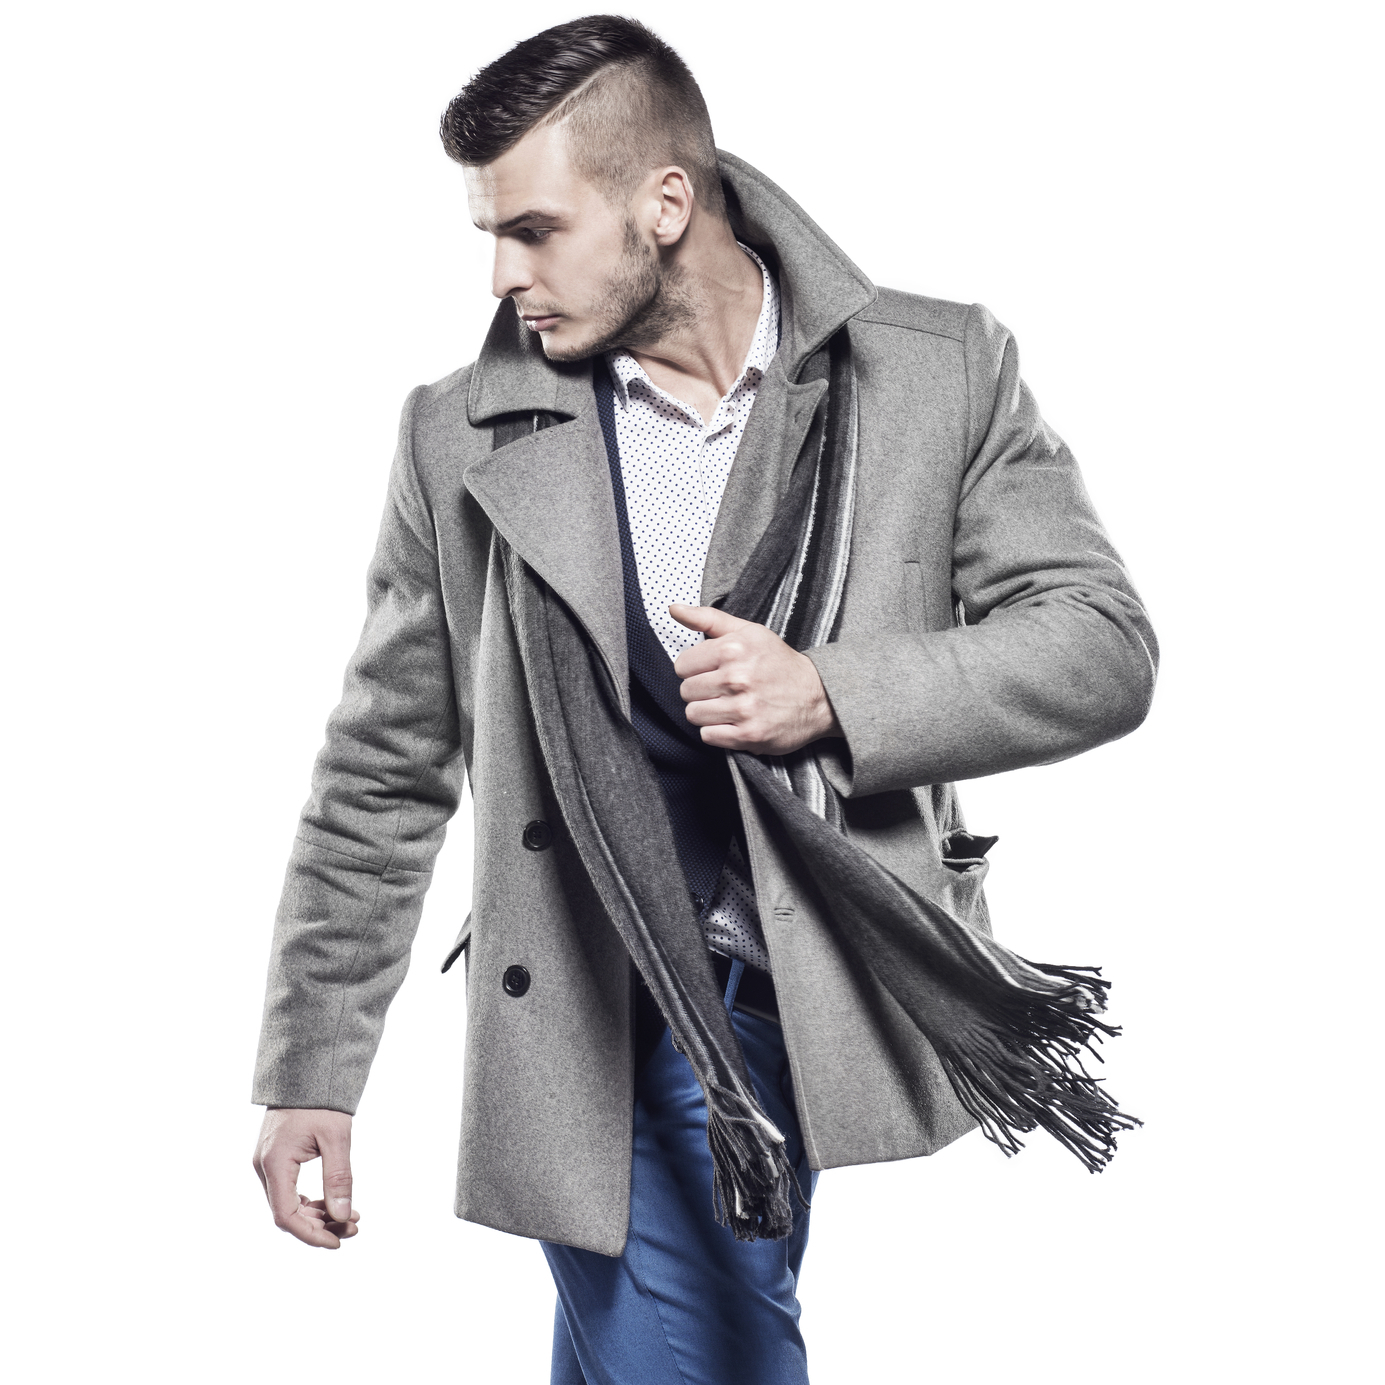 Man in jacket and shirt with scarf